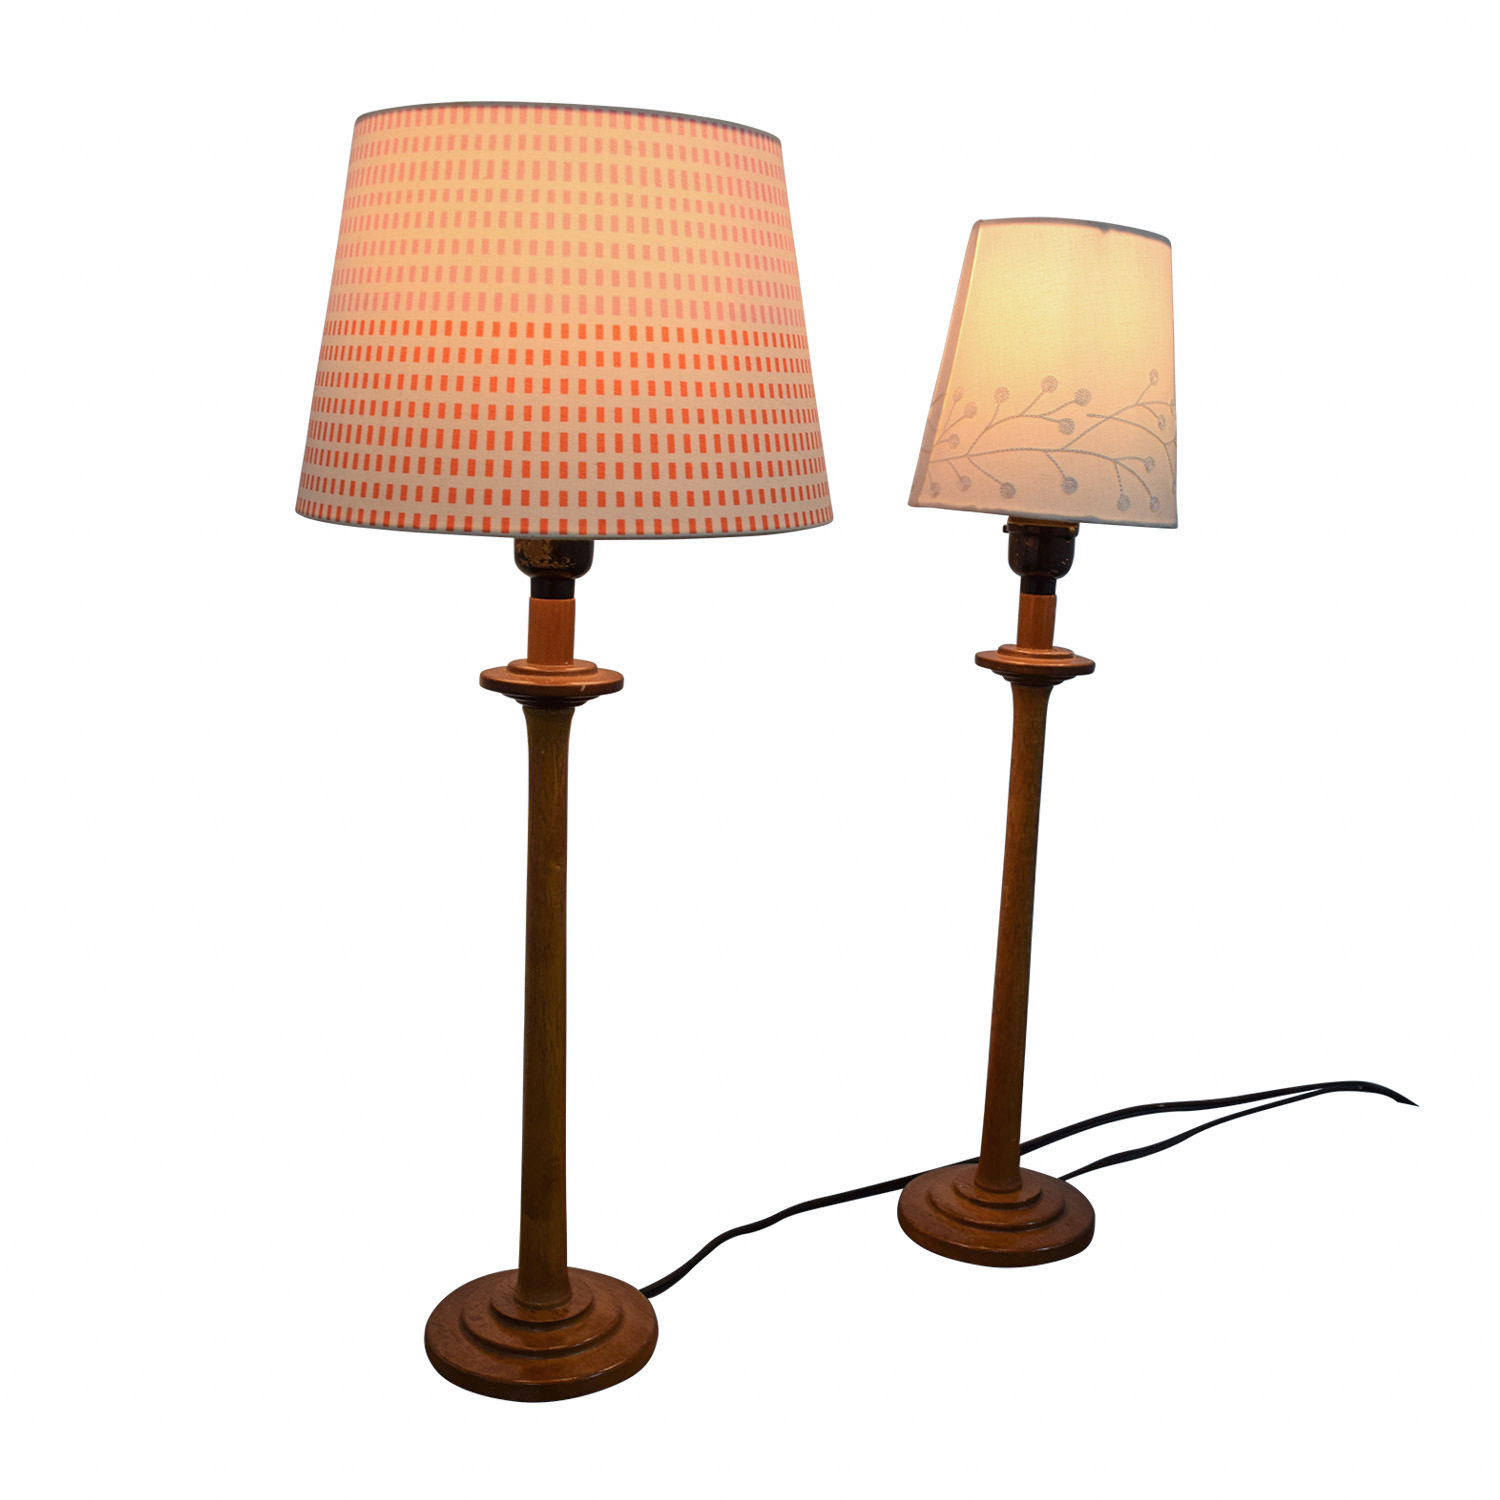 54% OFF - Wood Table Lamps with Mismatched Shades / Decor